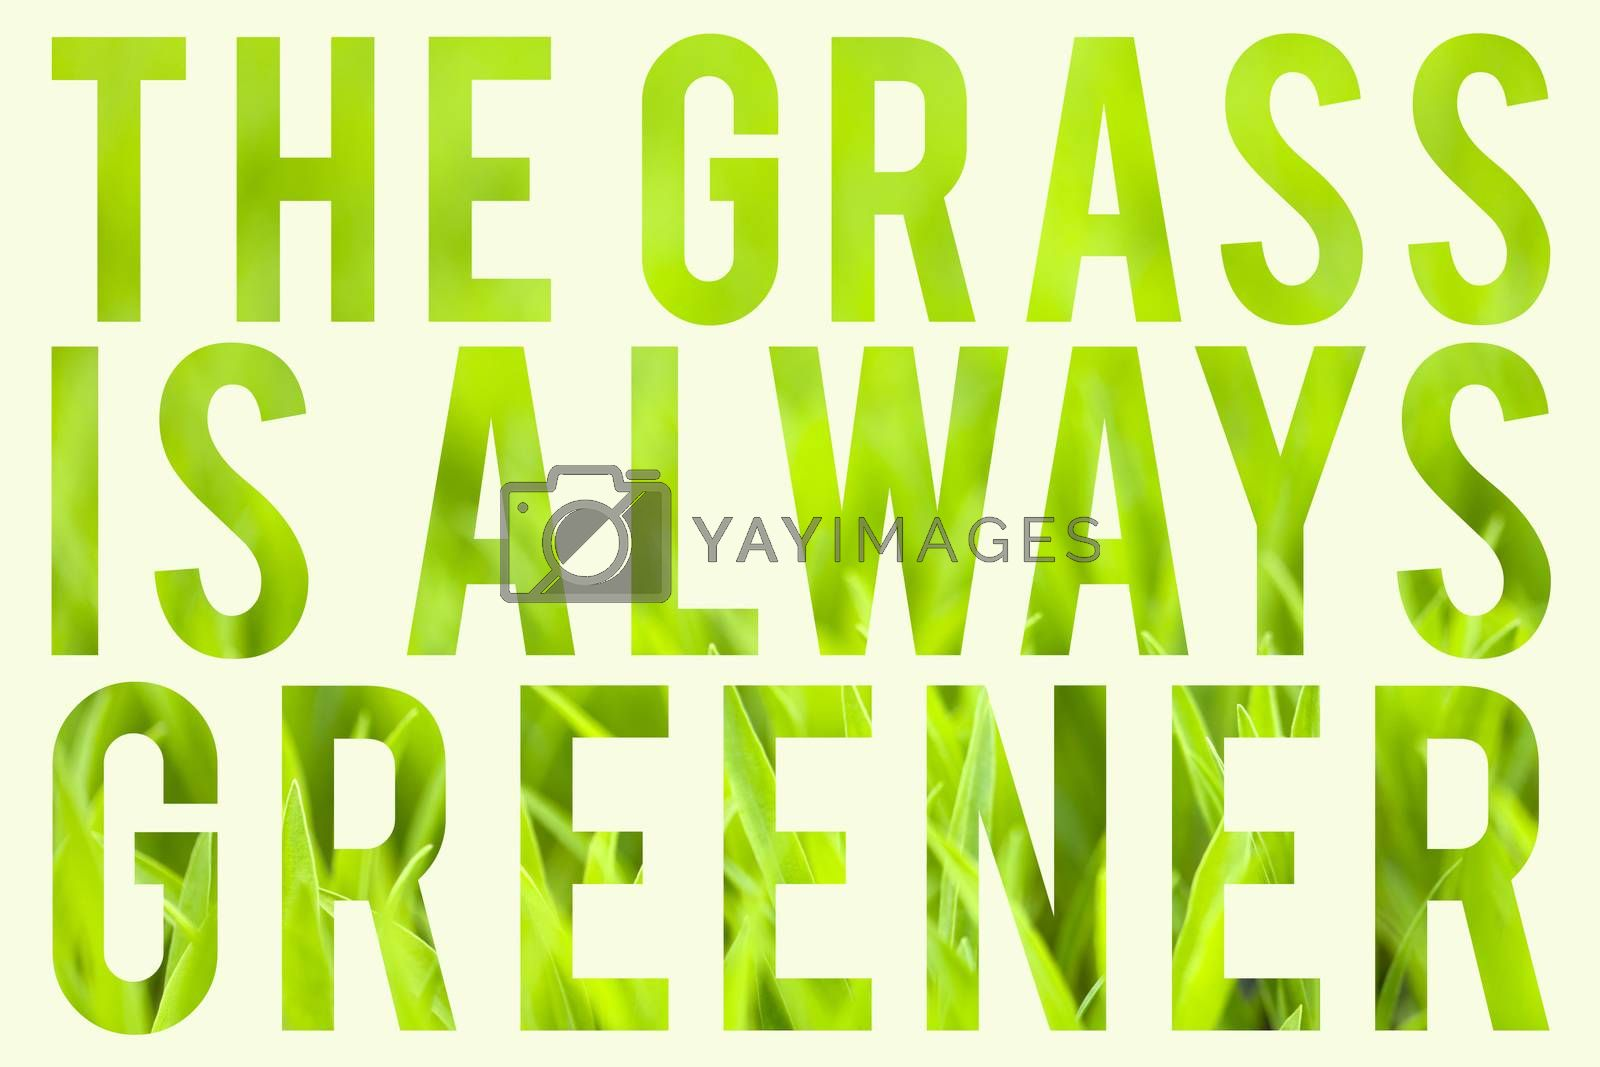 Green grass with typography quote about the grass always being greener on the other side.